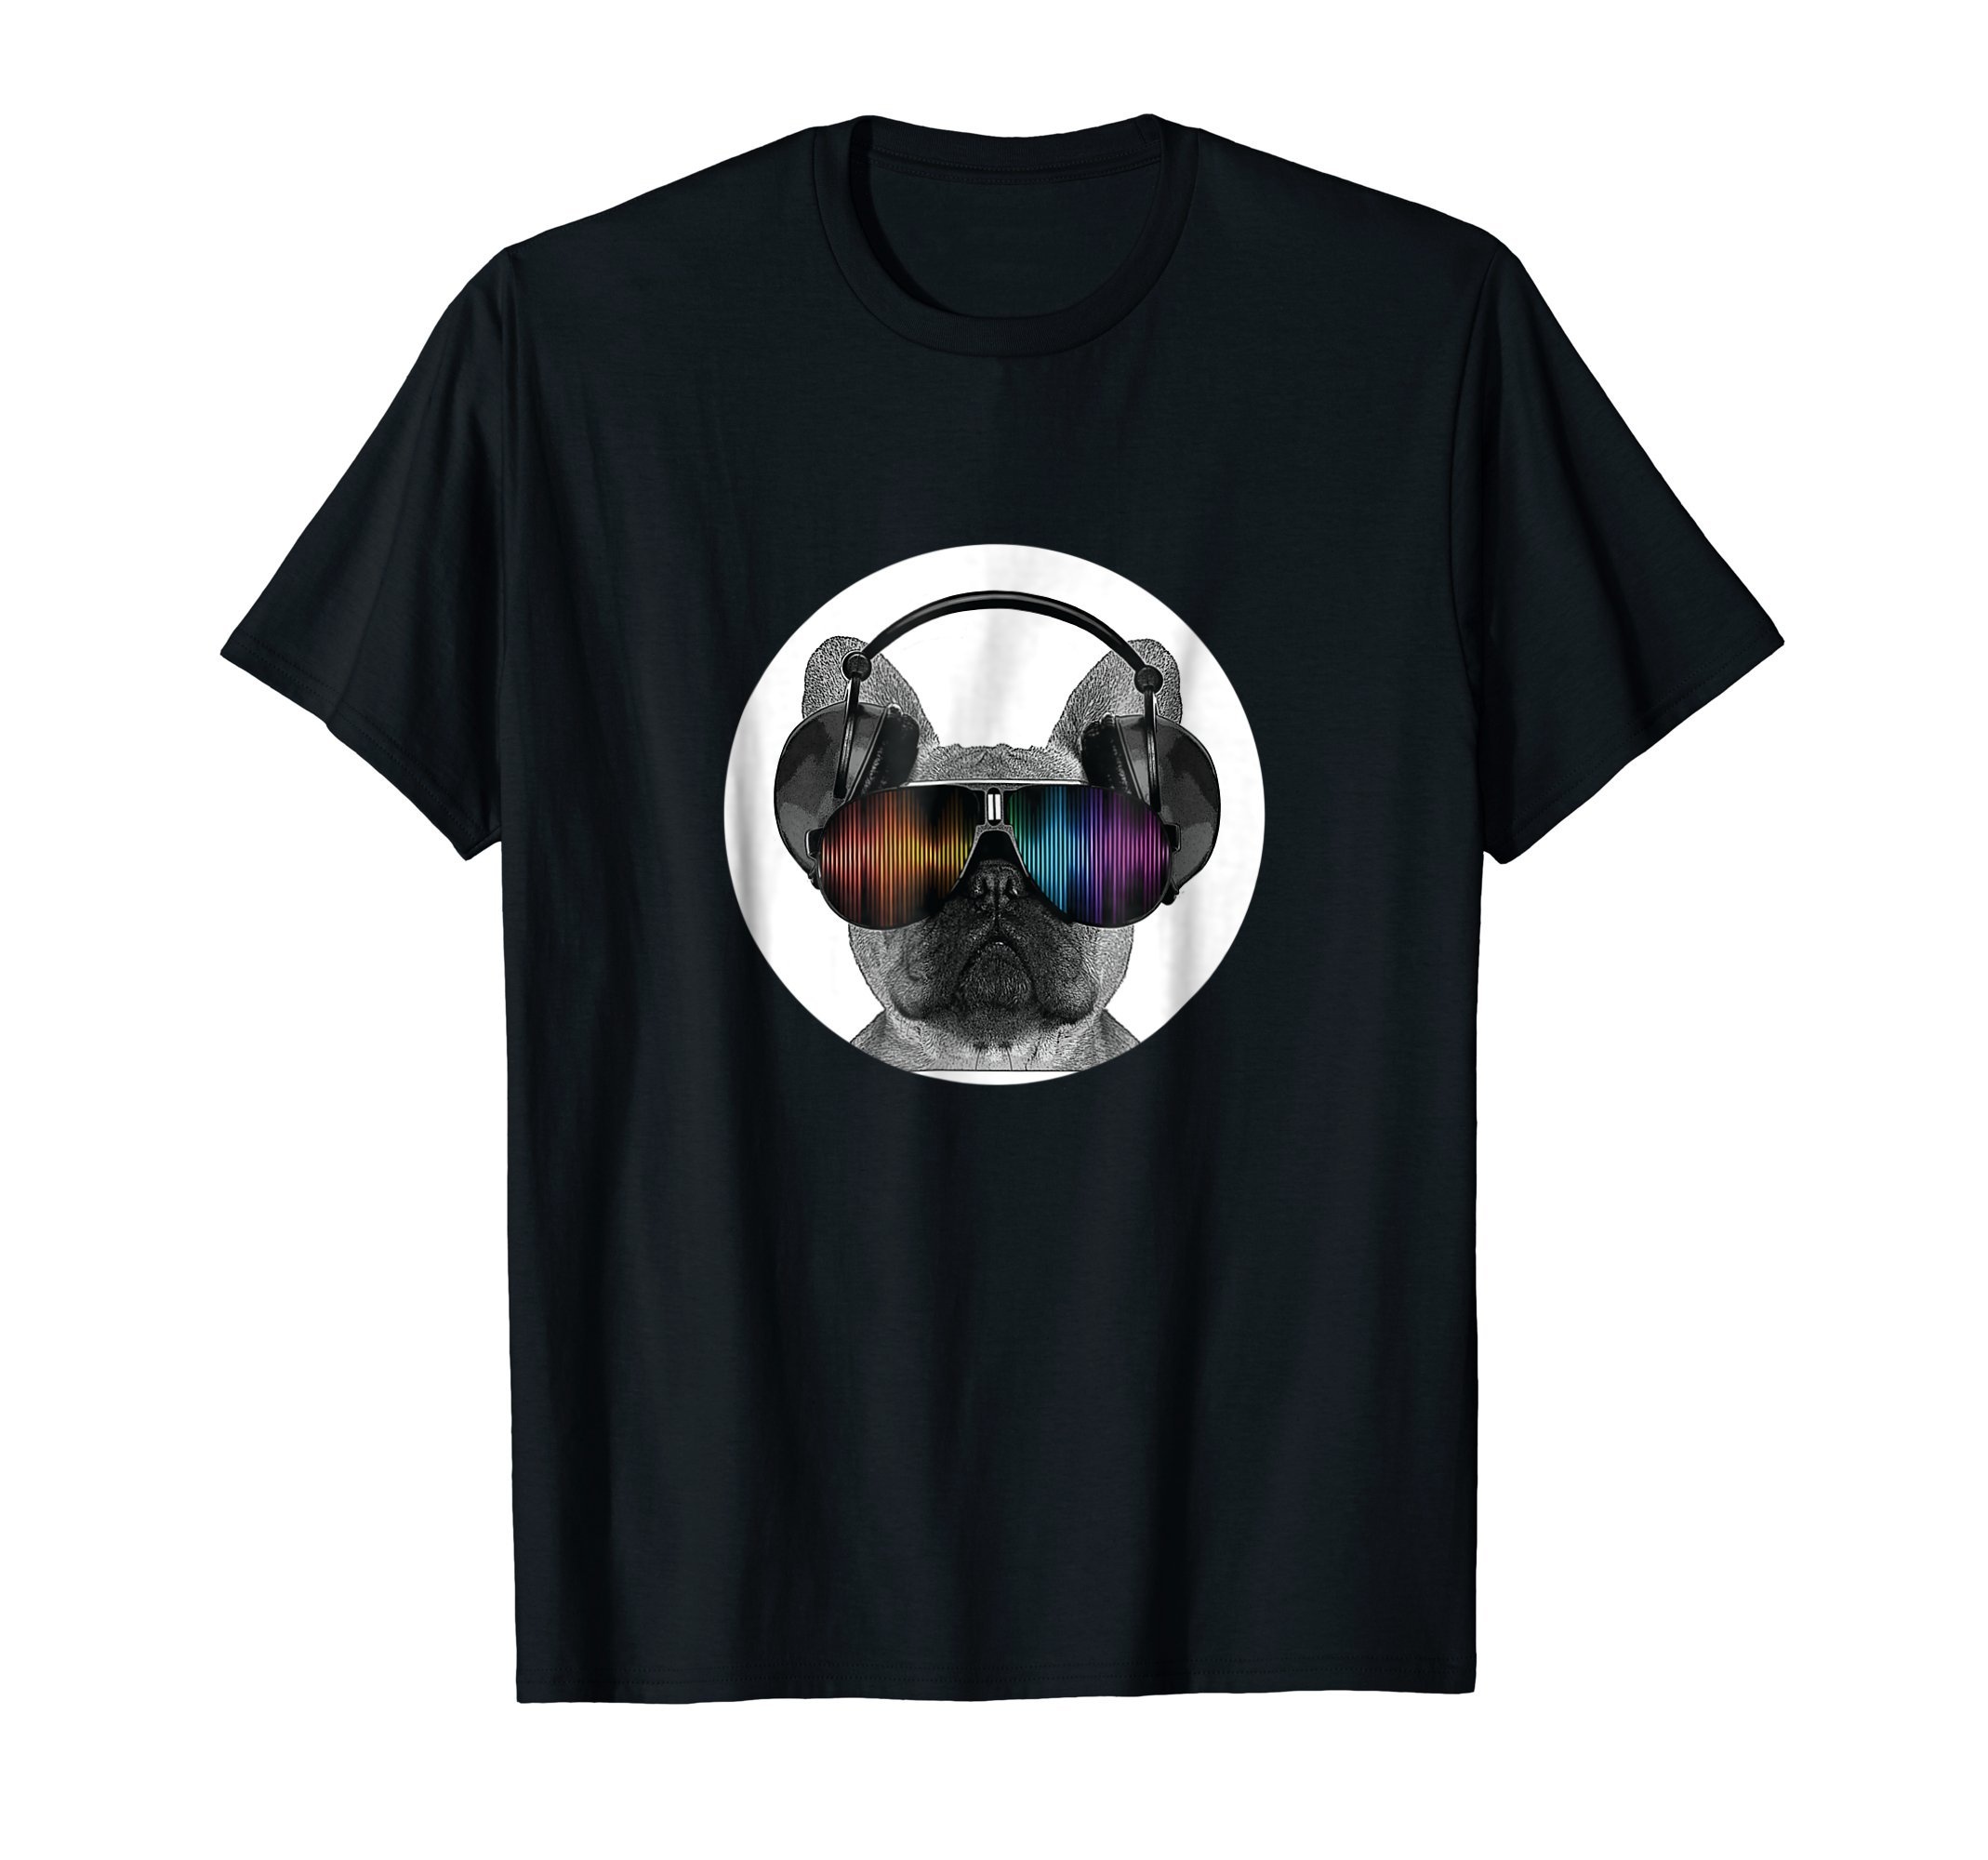 Pug Puppy Dog With Headphones On - Back To School Tshirt